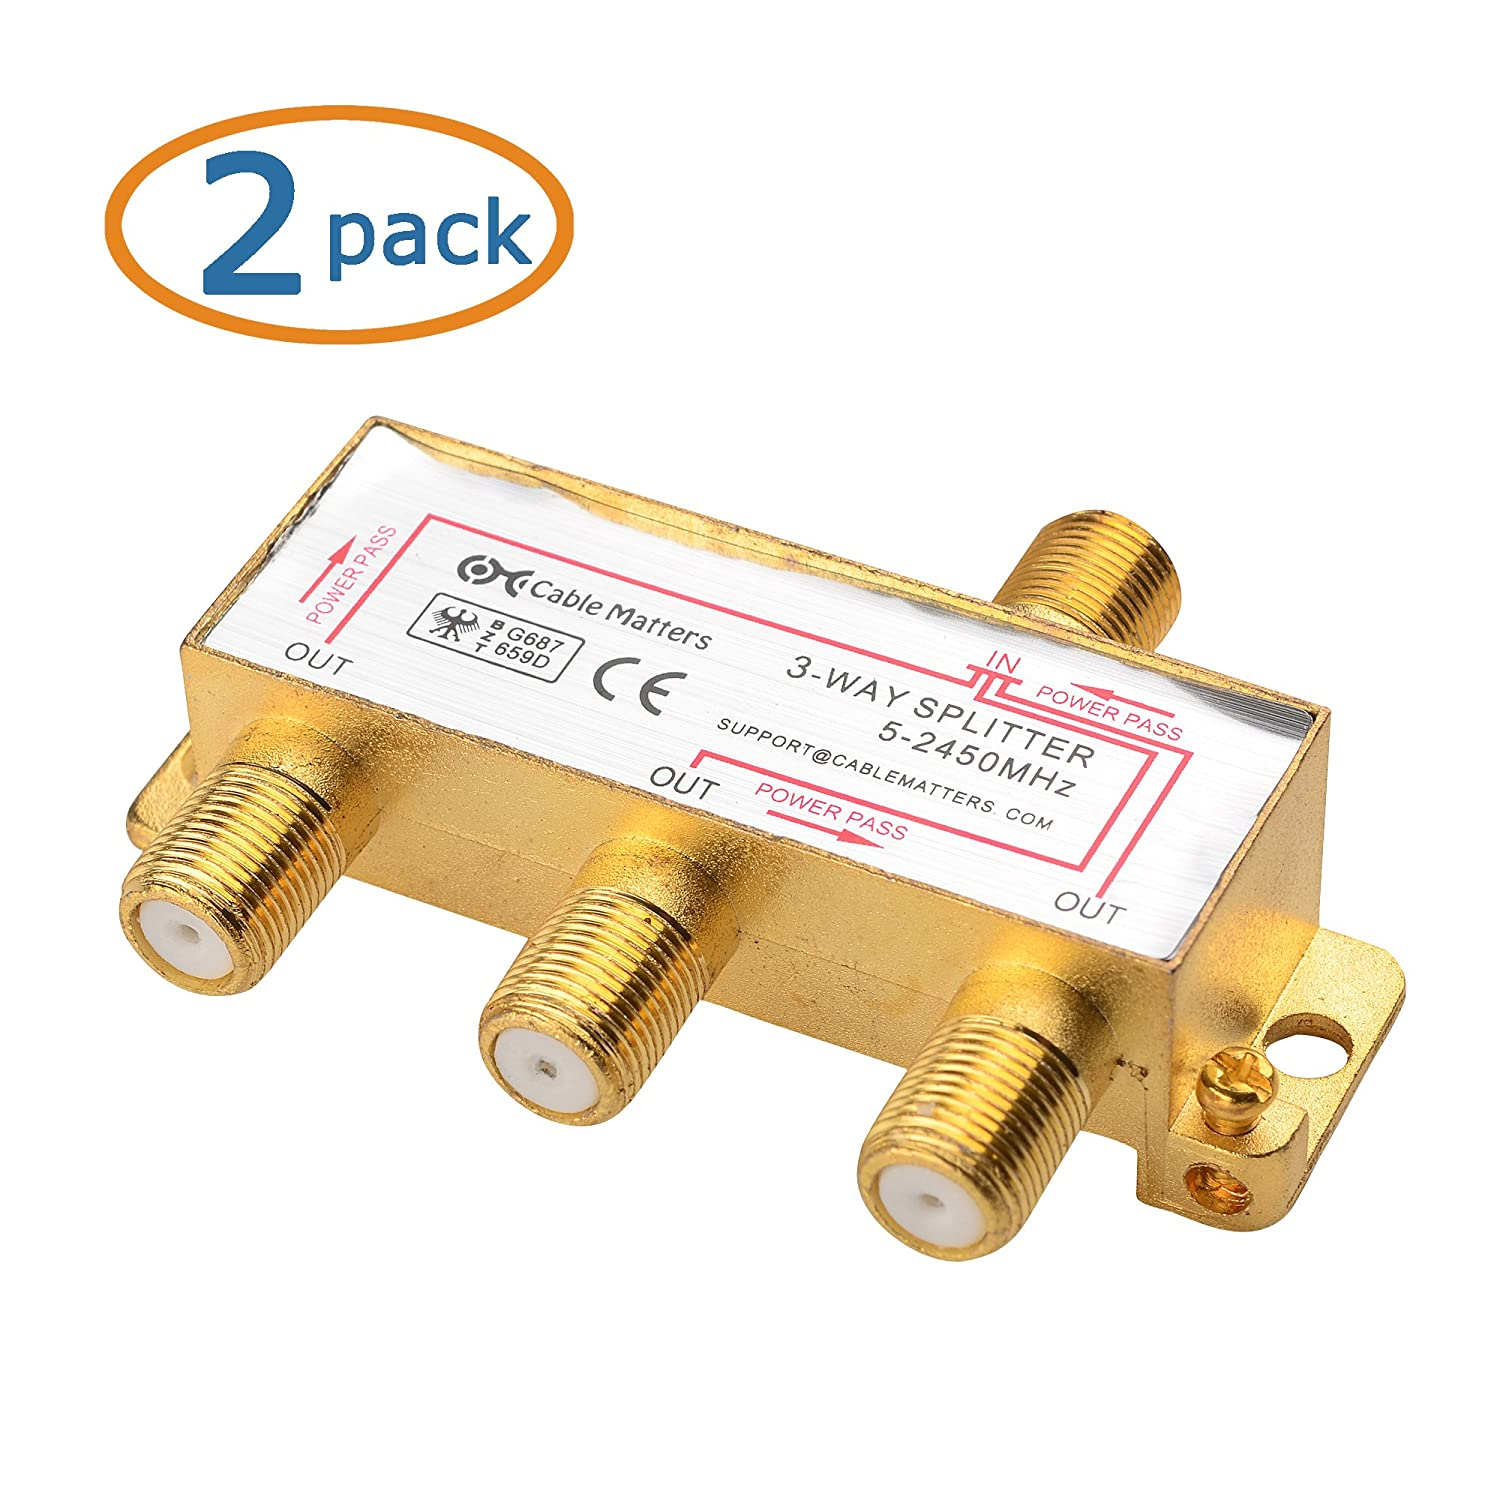 2 way splitter to kill a mockingbird plot diagram cable matters pack gold plated 3 4 ghz coaxial